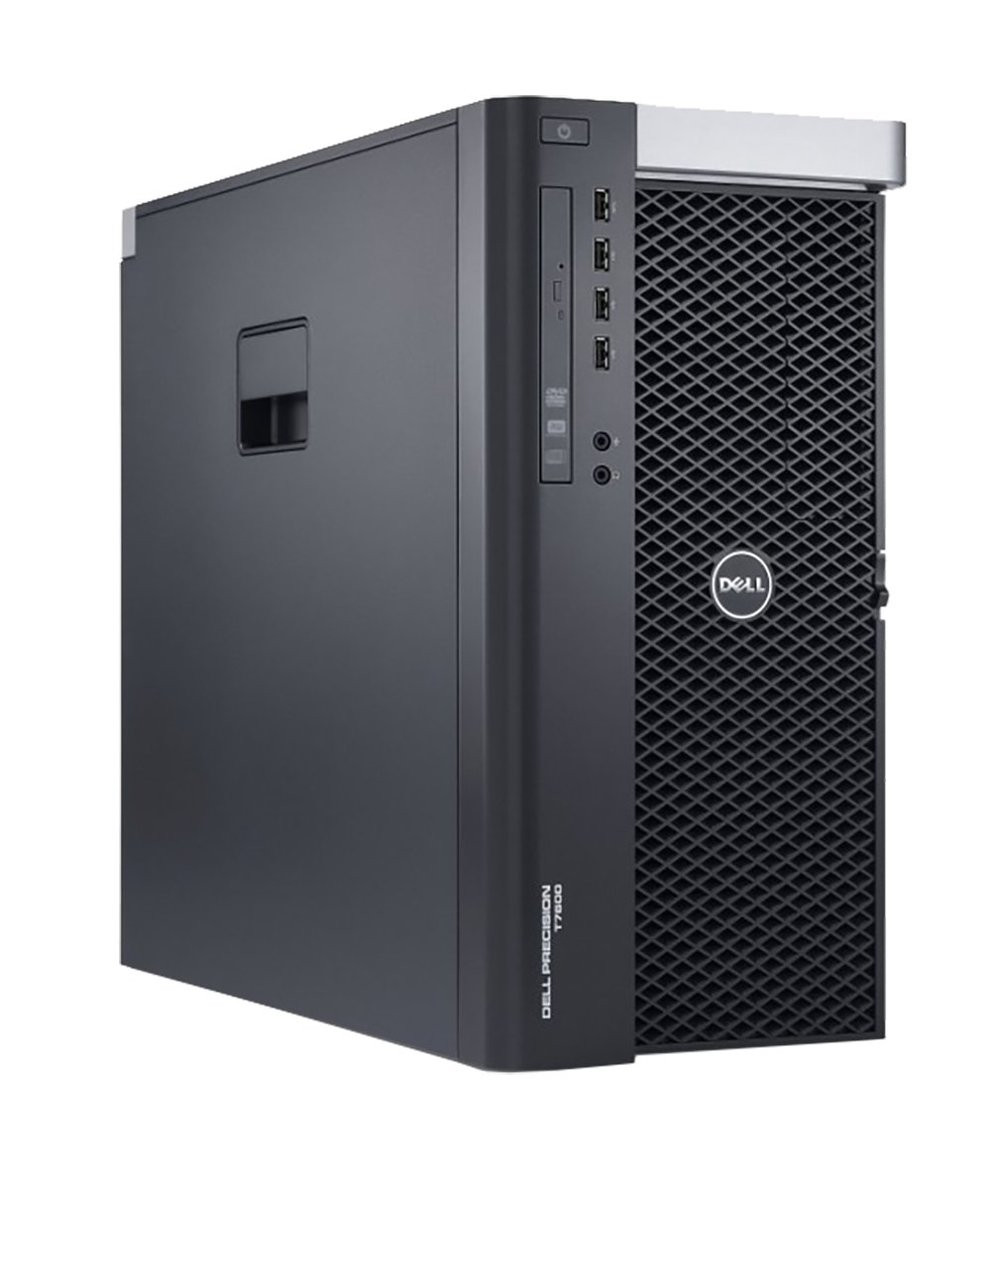 Dell Precision T7600 Tower Six Core Dual Intel Xeon 2.0GHz, 16GB Ram, 500GB HDD, DVD-RW, Windows 10 Pro 64 Desktop Computer